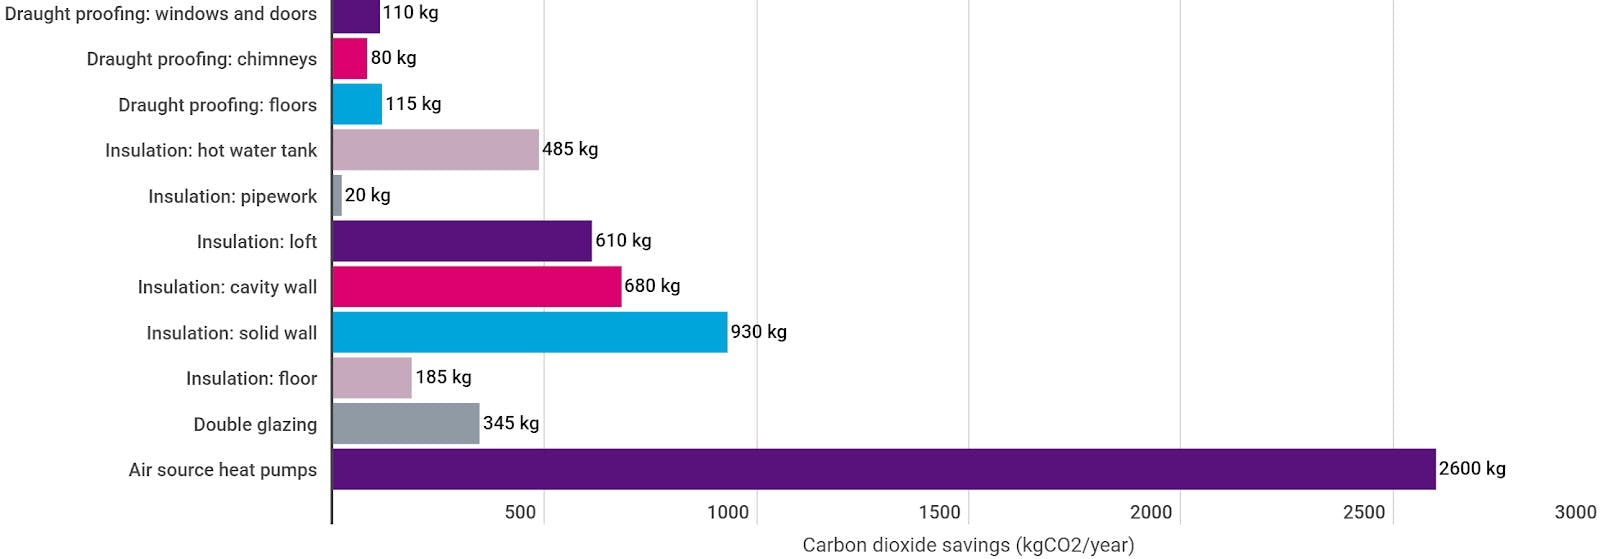 Carbon dioxide savings from various types of home insulation.